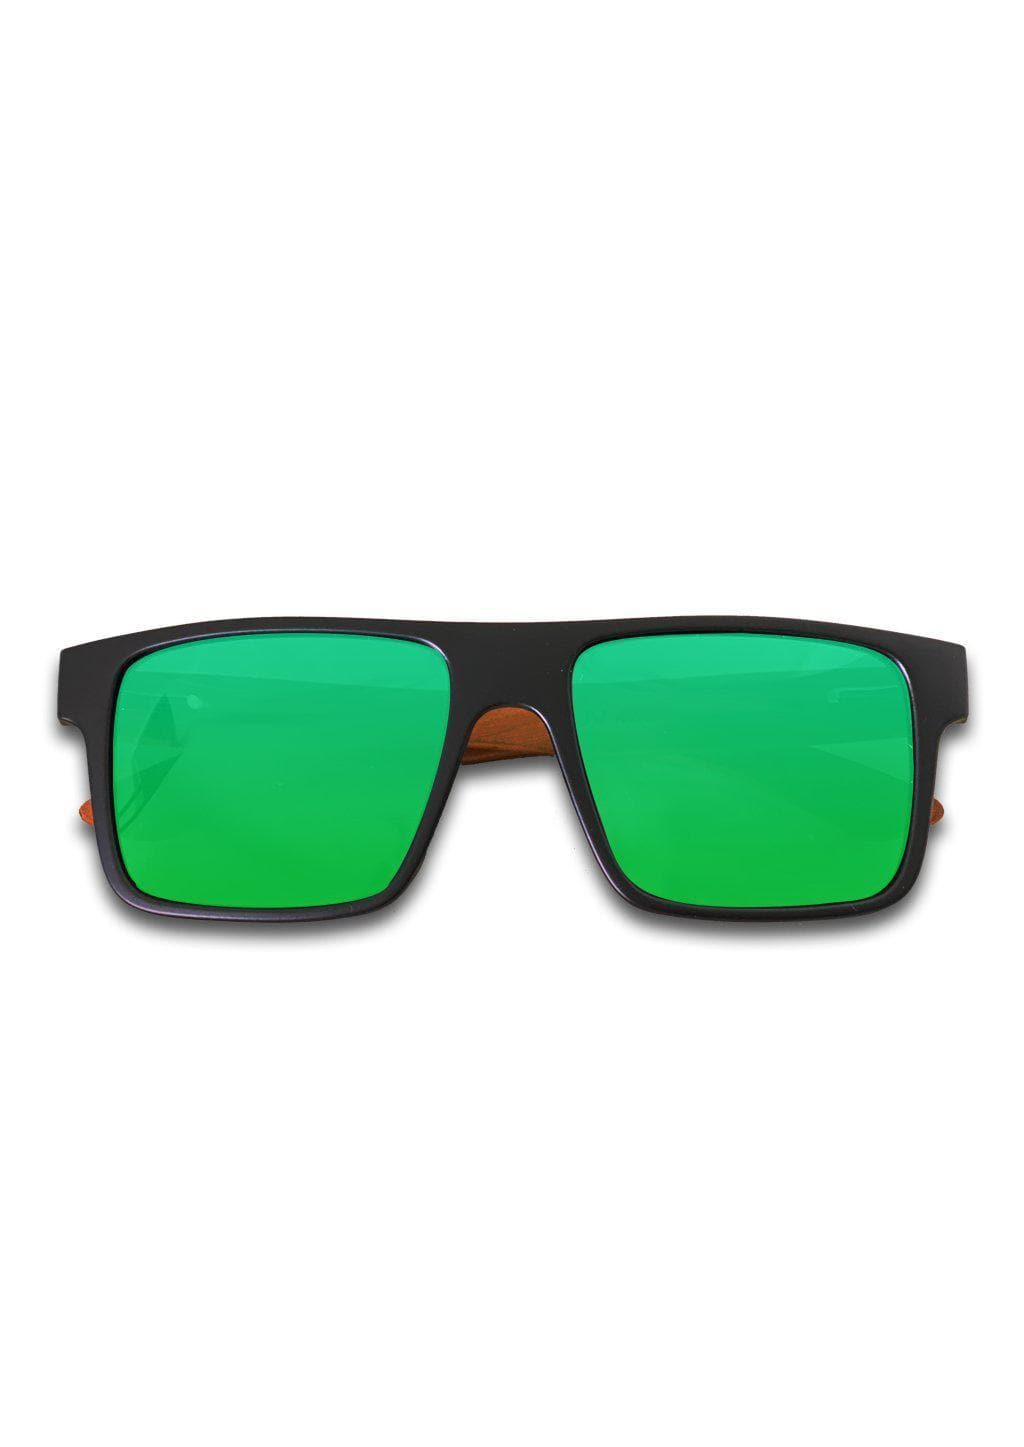 Eyewood Square - Blanka - Our square wooden sunglasses with classic black frame and green mirror lenses.